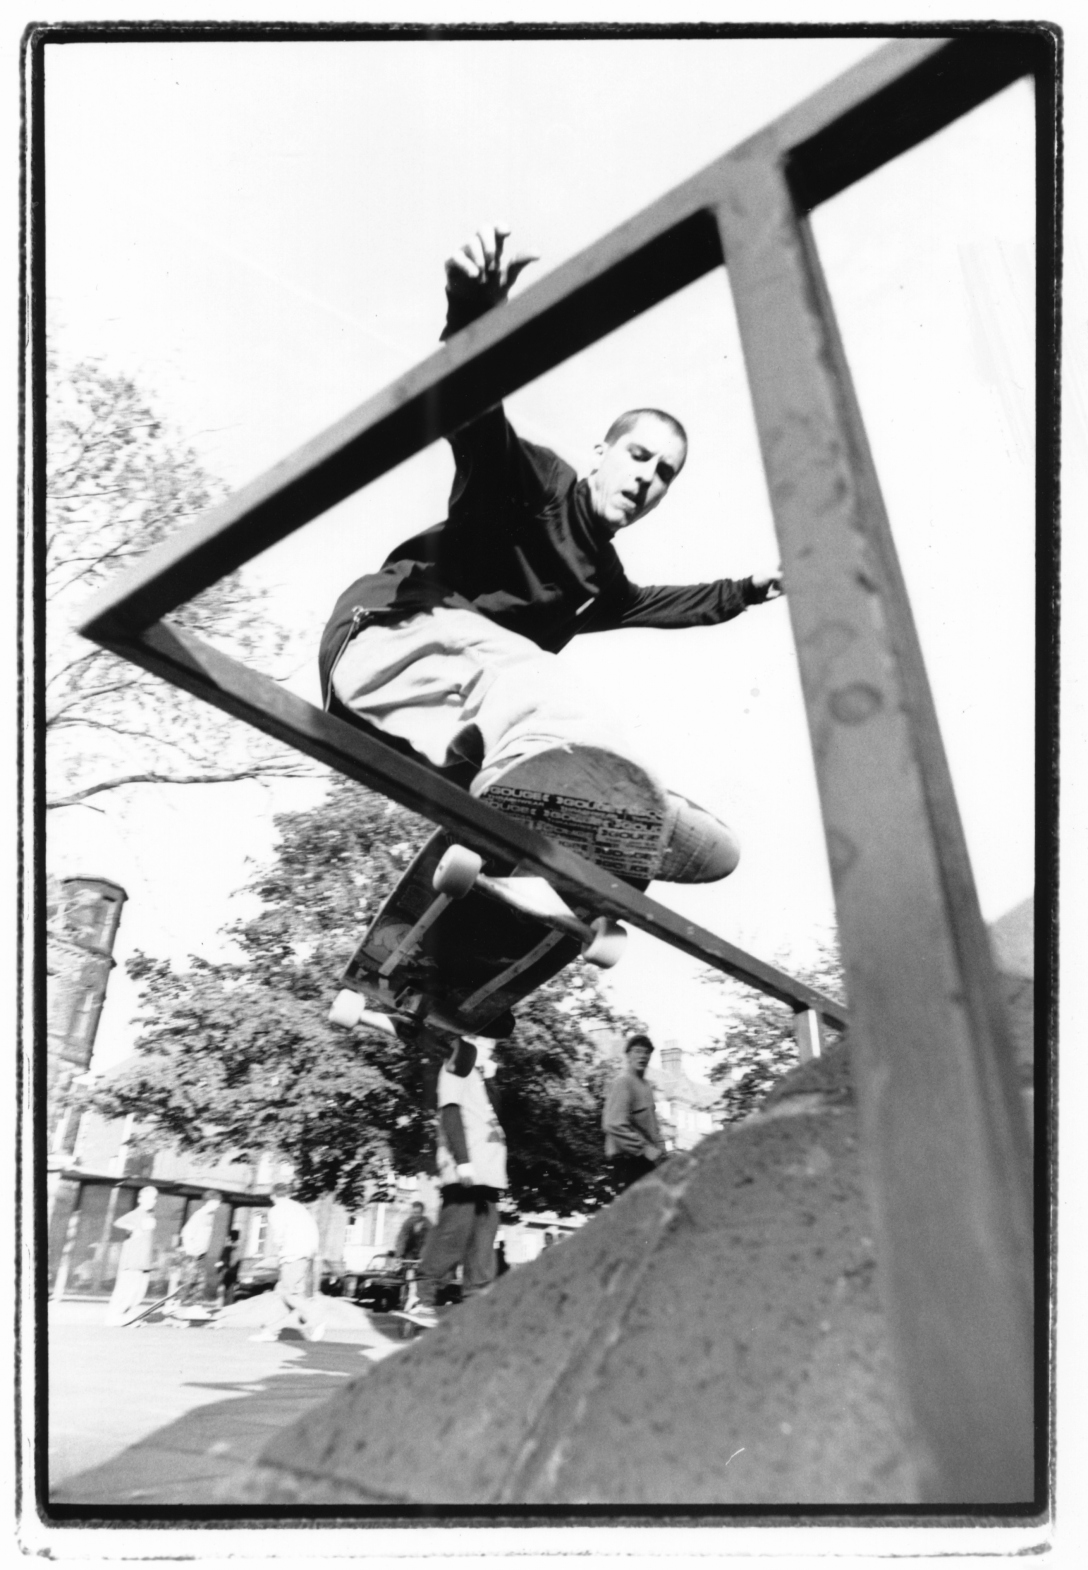 John Montesi Fronside Noseslide New Deal demo Manchester 1991 photo Kevin Banks Speedway Skateboarding Magazine.jpg